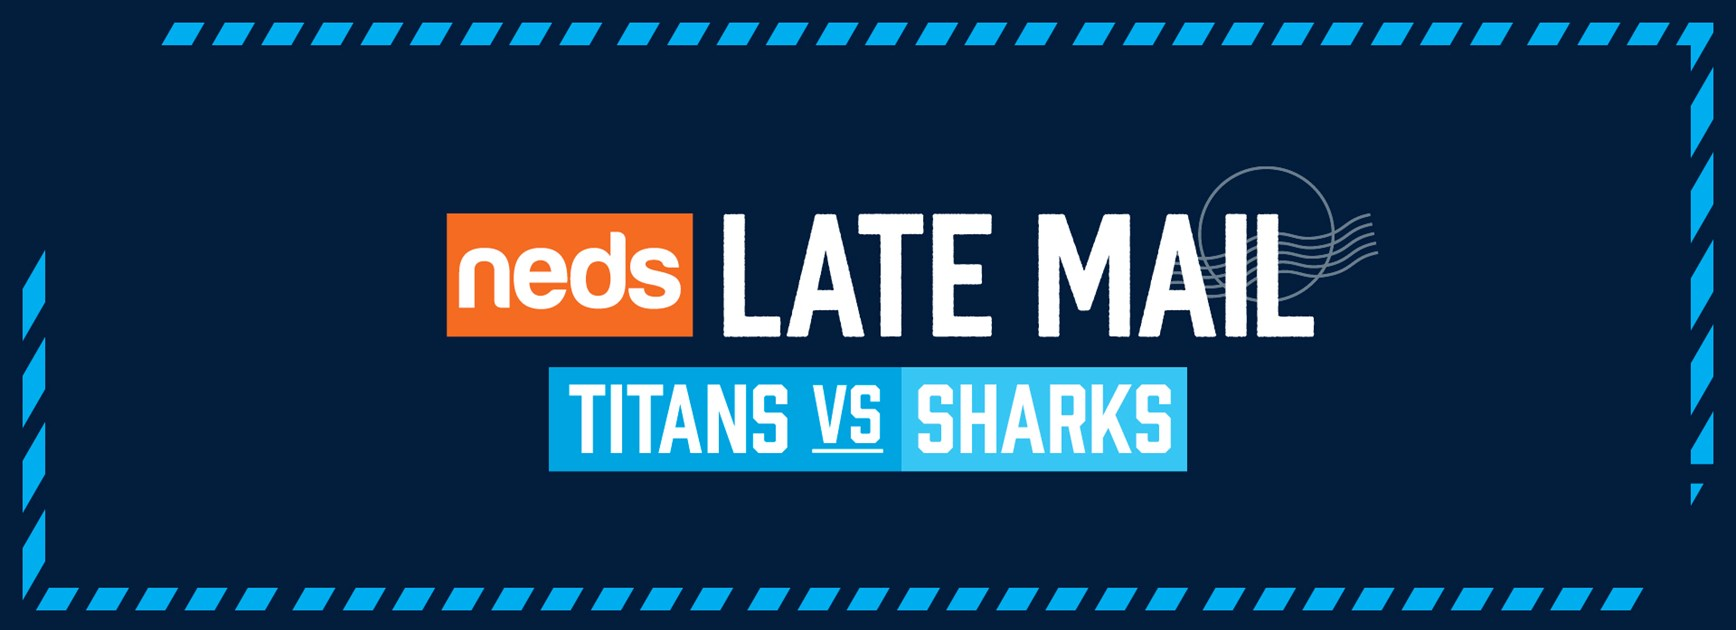 LATE MAIL: Titans Round 8 To Take  On Sharks at Cbus Super Stadium